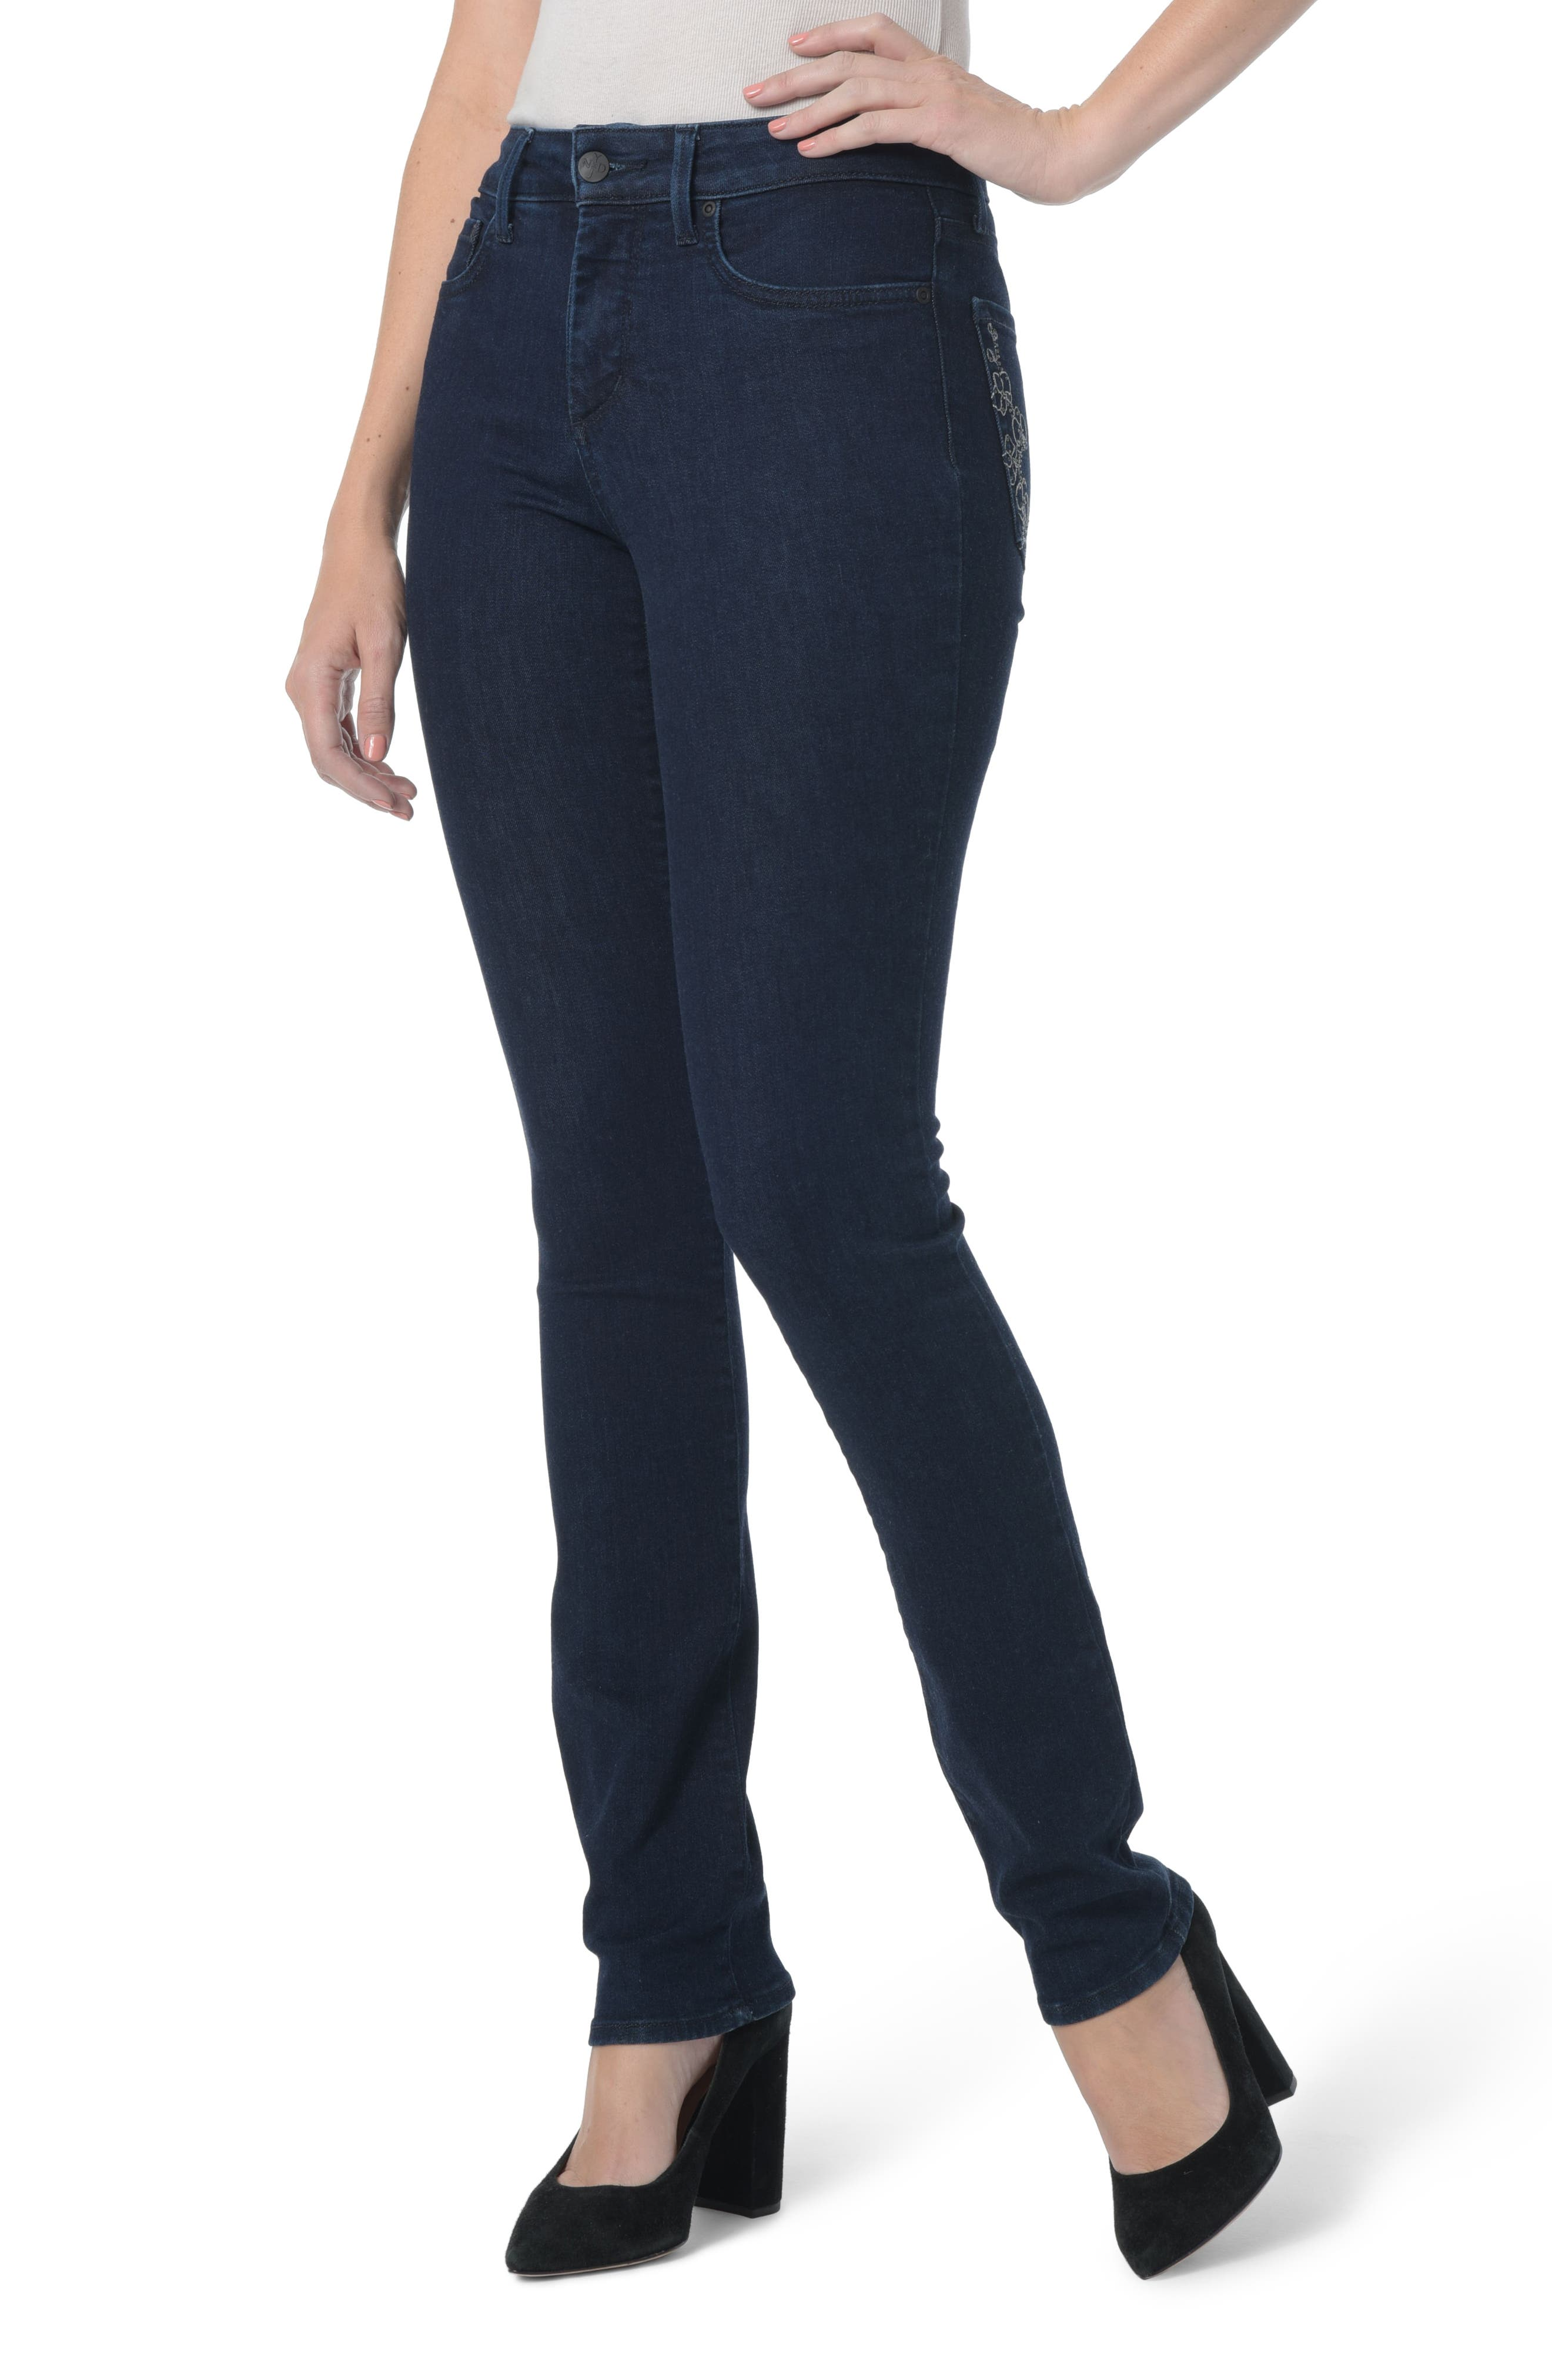 Sheri Floral Bling Stretch Slim Jeans,                         Main,                         color, Rinse